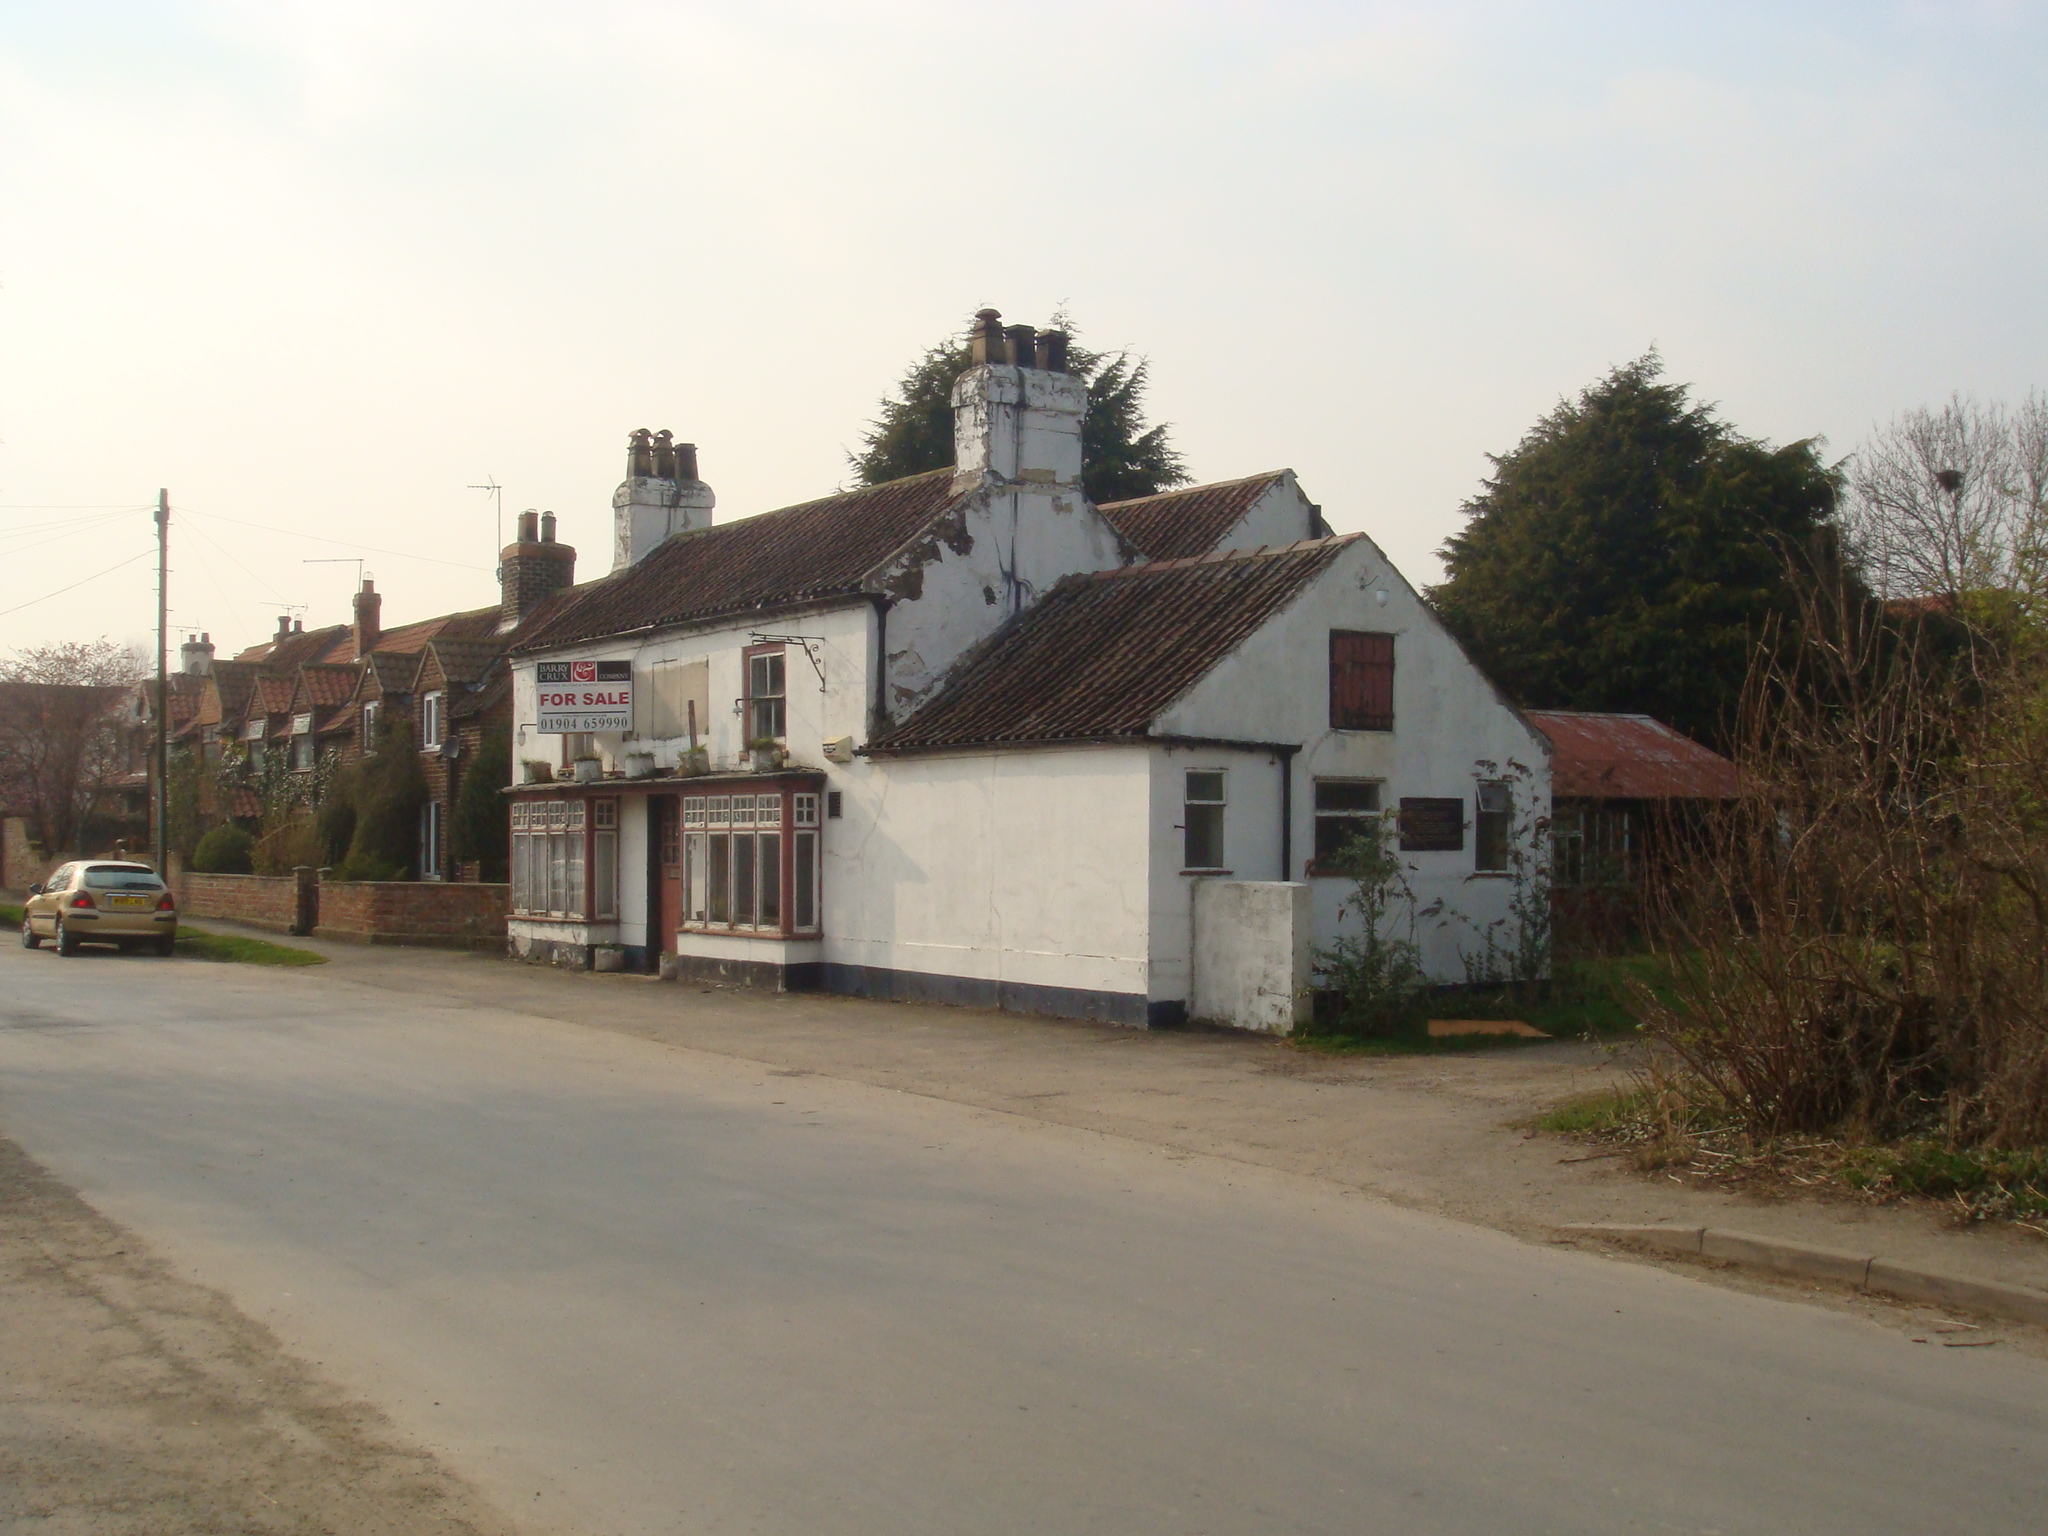 Neglected Pub Prior to Redevelopment within the Street Scene